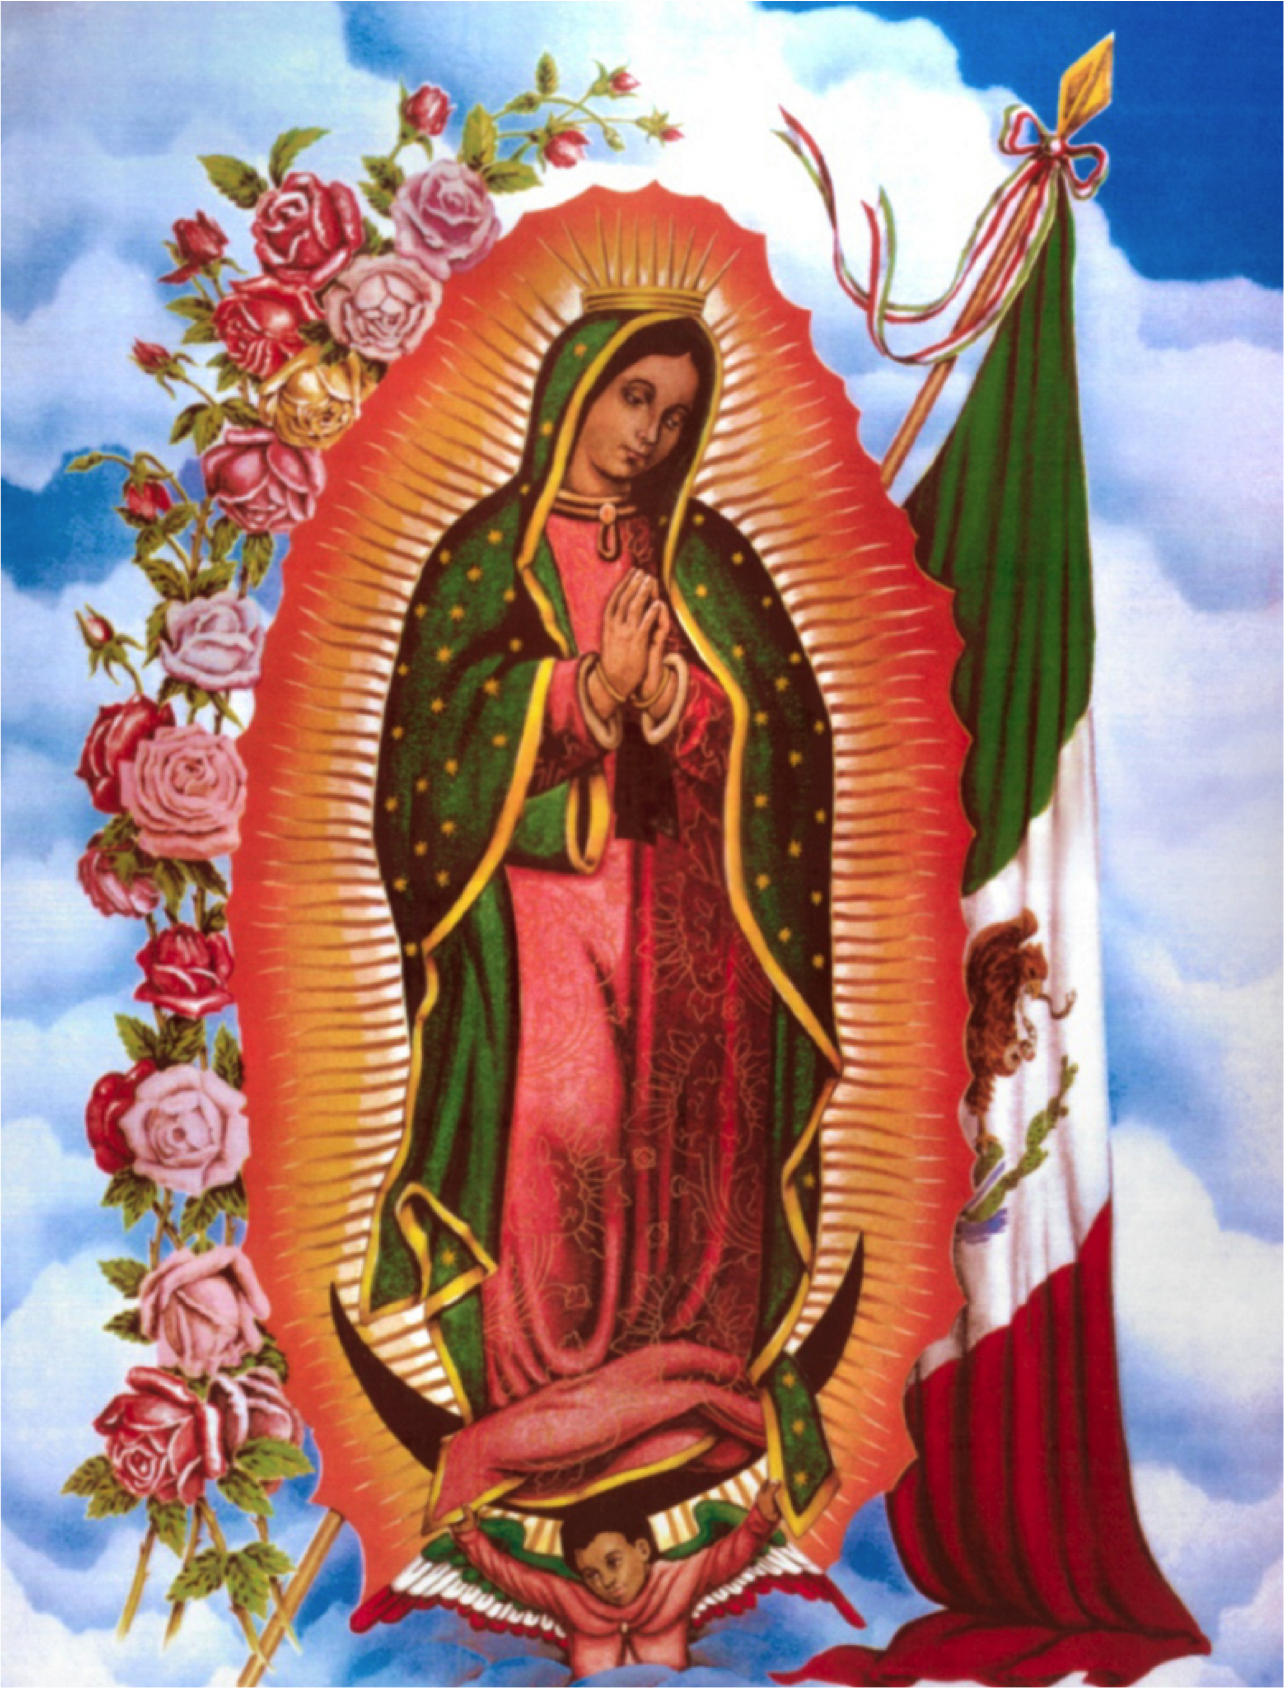 Popular Culture, Nation and National Identity in Contemporary Mexico